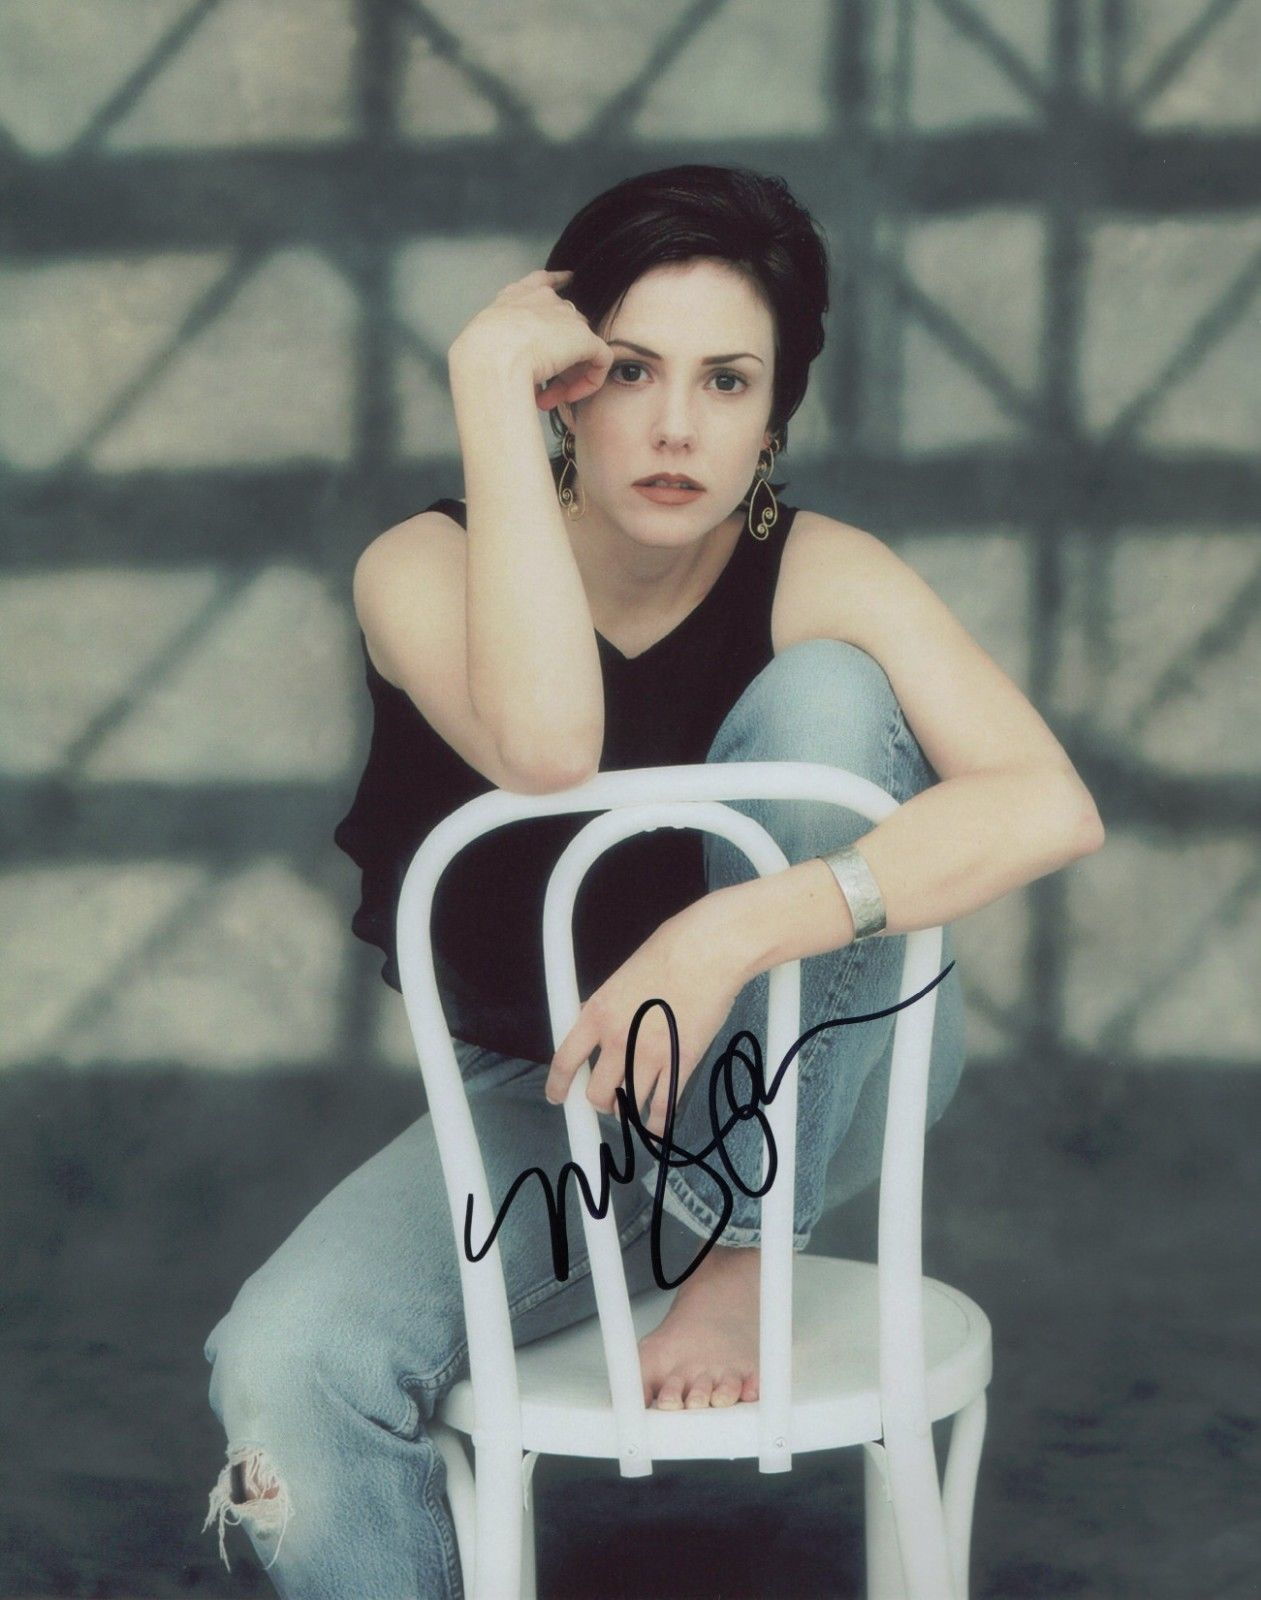 s-l1600Mary_Louise_Parker_Signed_When_We_Rise